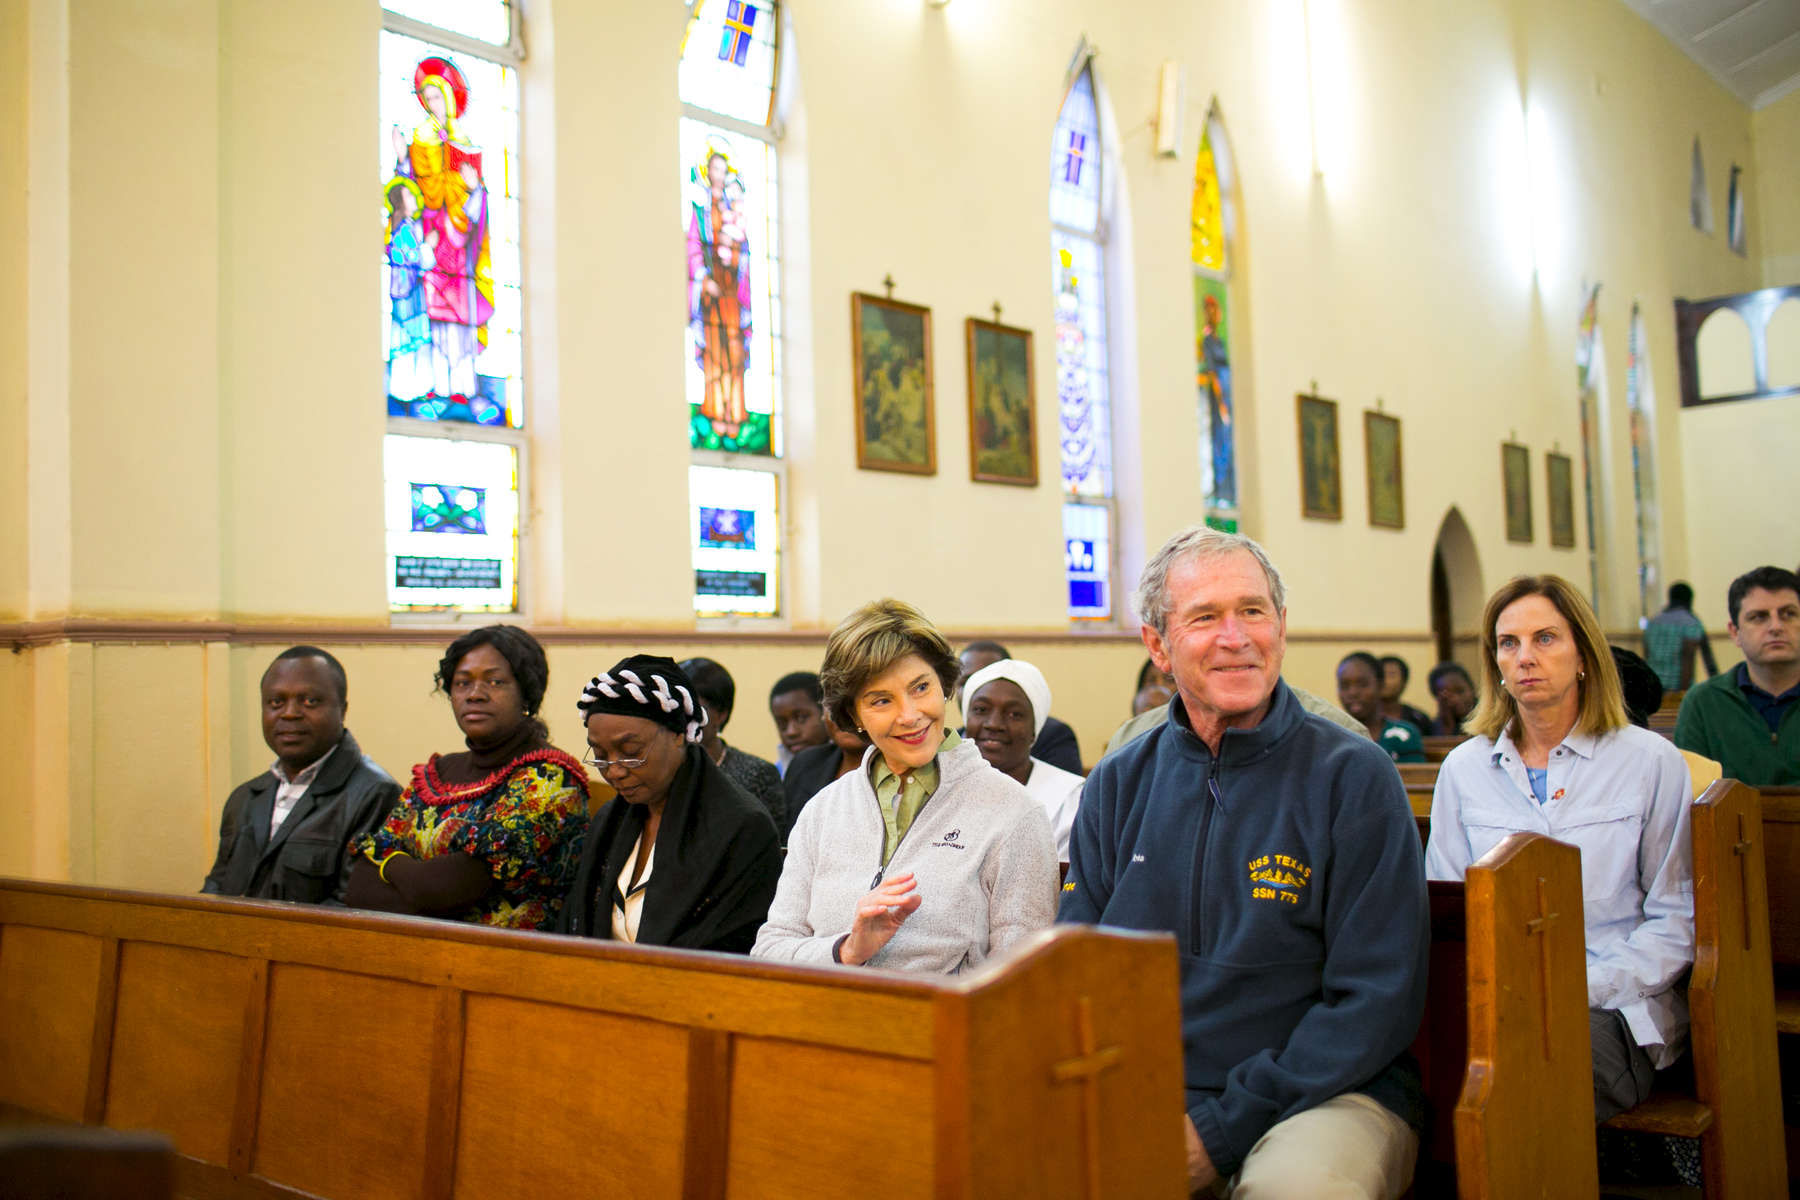 CATHEDRAL OF ST. THERESA CATHOLIC CHURCH SERVICE in Livingston, Zambia. The trip of President George W. Bush and Mrs. Laura Bush to Zambia and Tanzania on June 29, 2013. Photo by Paul Morse